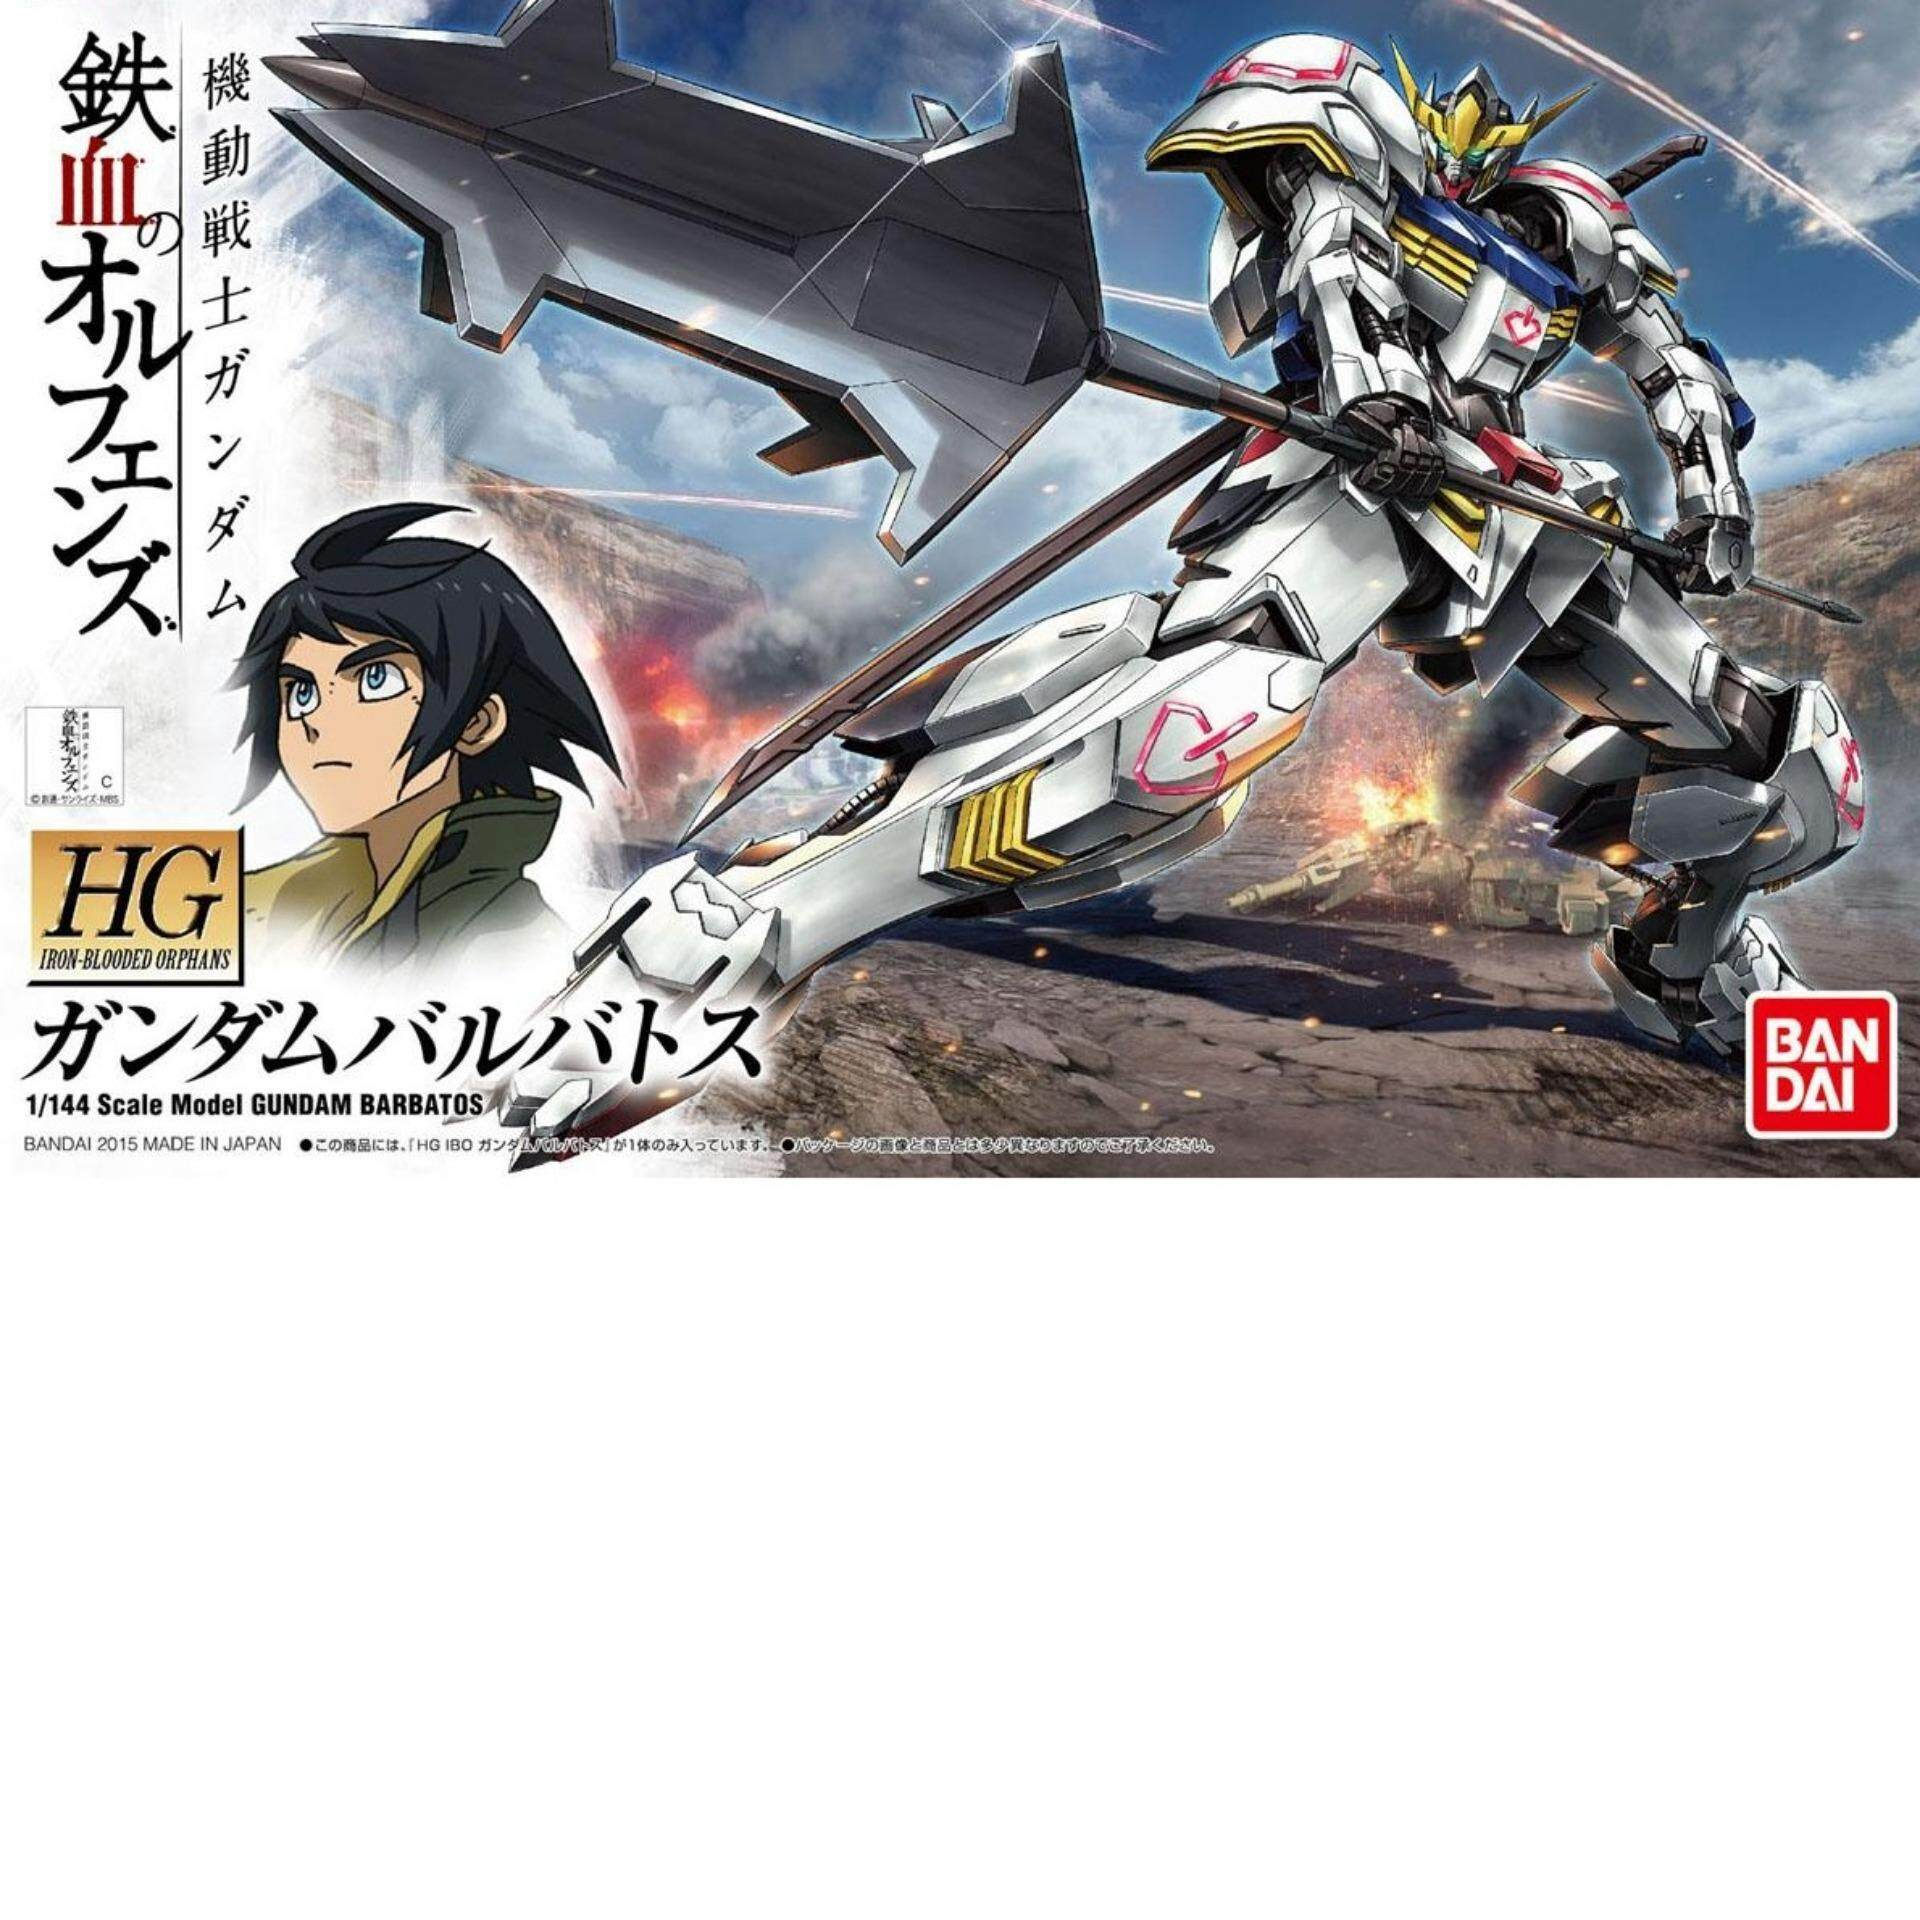 Bandai 1/144 High Grade Gundam Barbatos